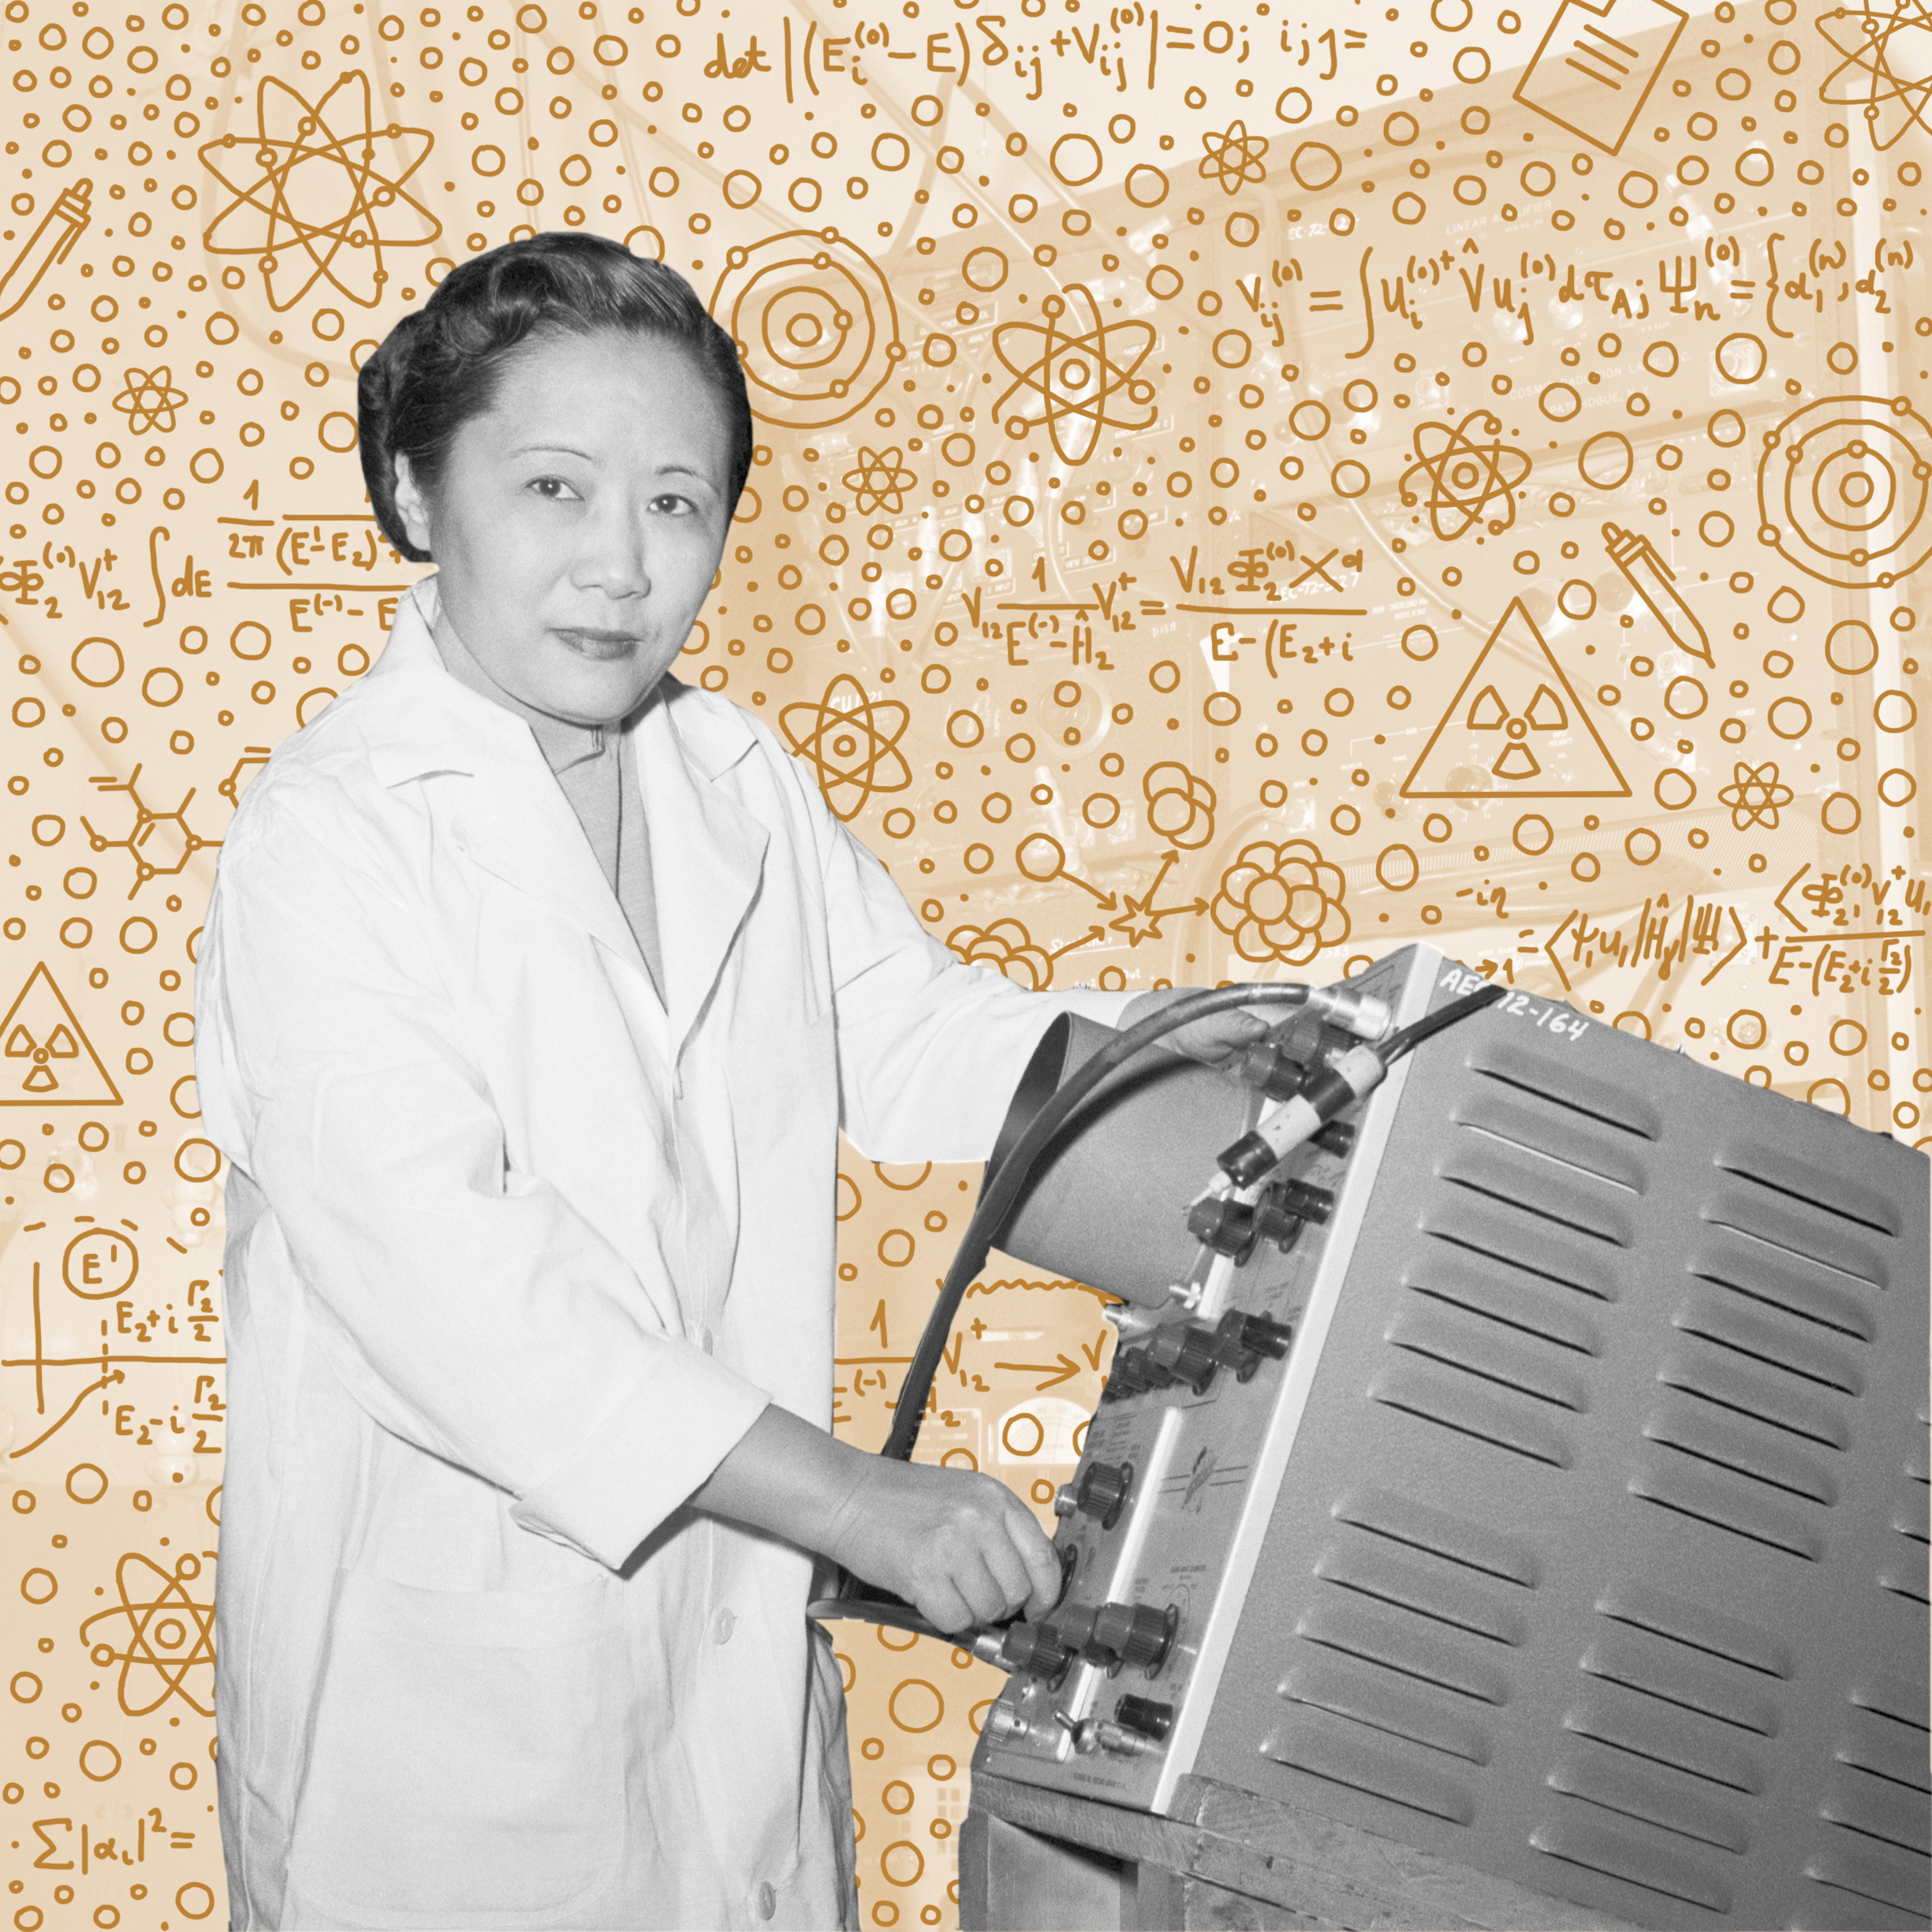 """Chien-Shiung Wu   Now known as """"the First Lady of Physics"""" """"Queen of Nuclear Research,"""" nuclear physicist Chien-Shiung Wu worked with theoretical physicists, Tsung-Dao Lee and Chen Ning Yang, who wanted her help in disproving the law of parity. Although Lee and Yang developed the theory disproving the law of parity, it was Wu who developed and conducted the experiments that actually served as proof. In 1957, Lee and Yang both received the Nobel Prize for their work — but Wu's contribution was ignored."""